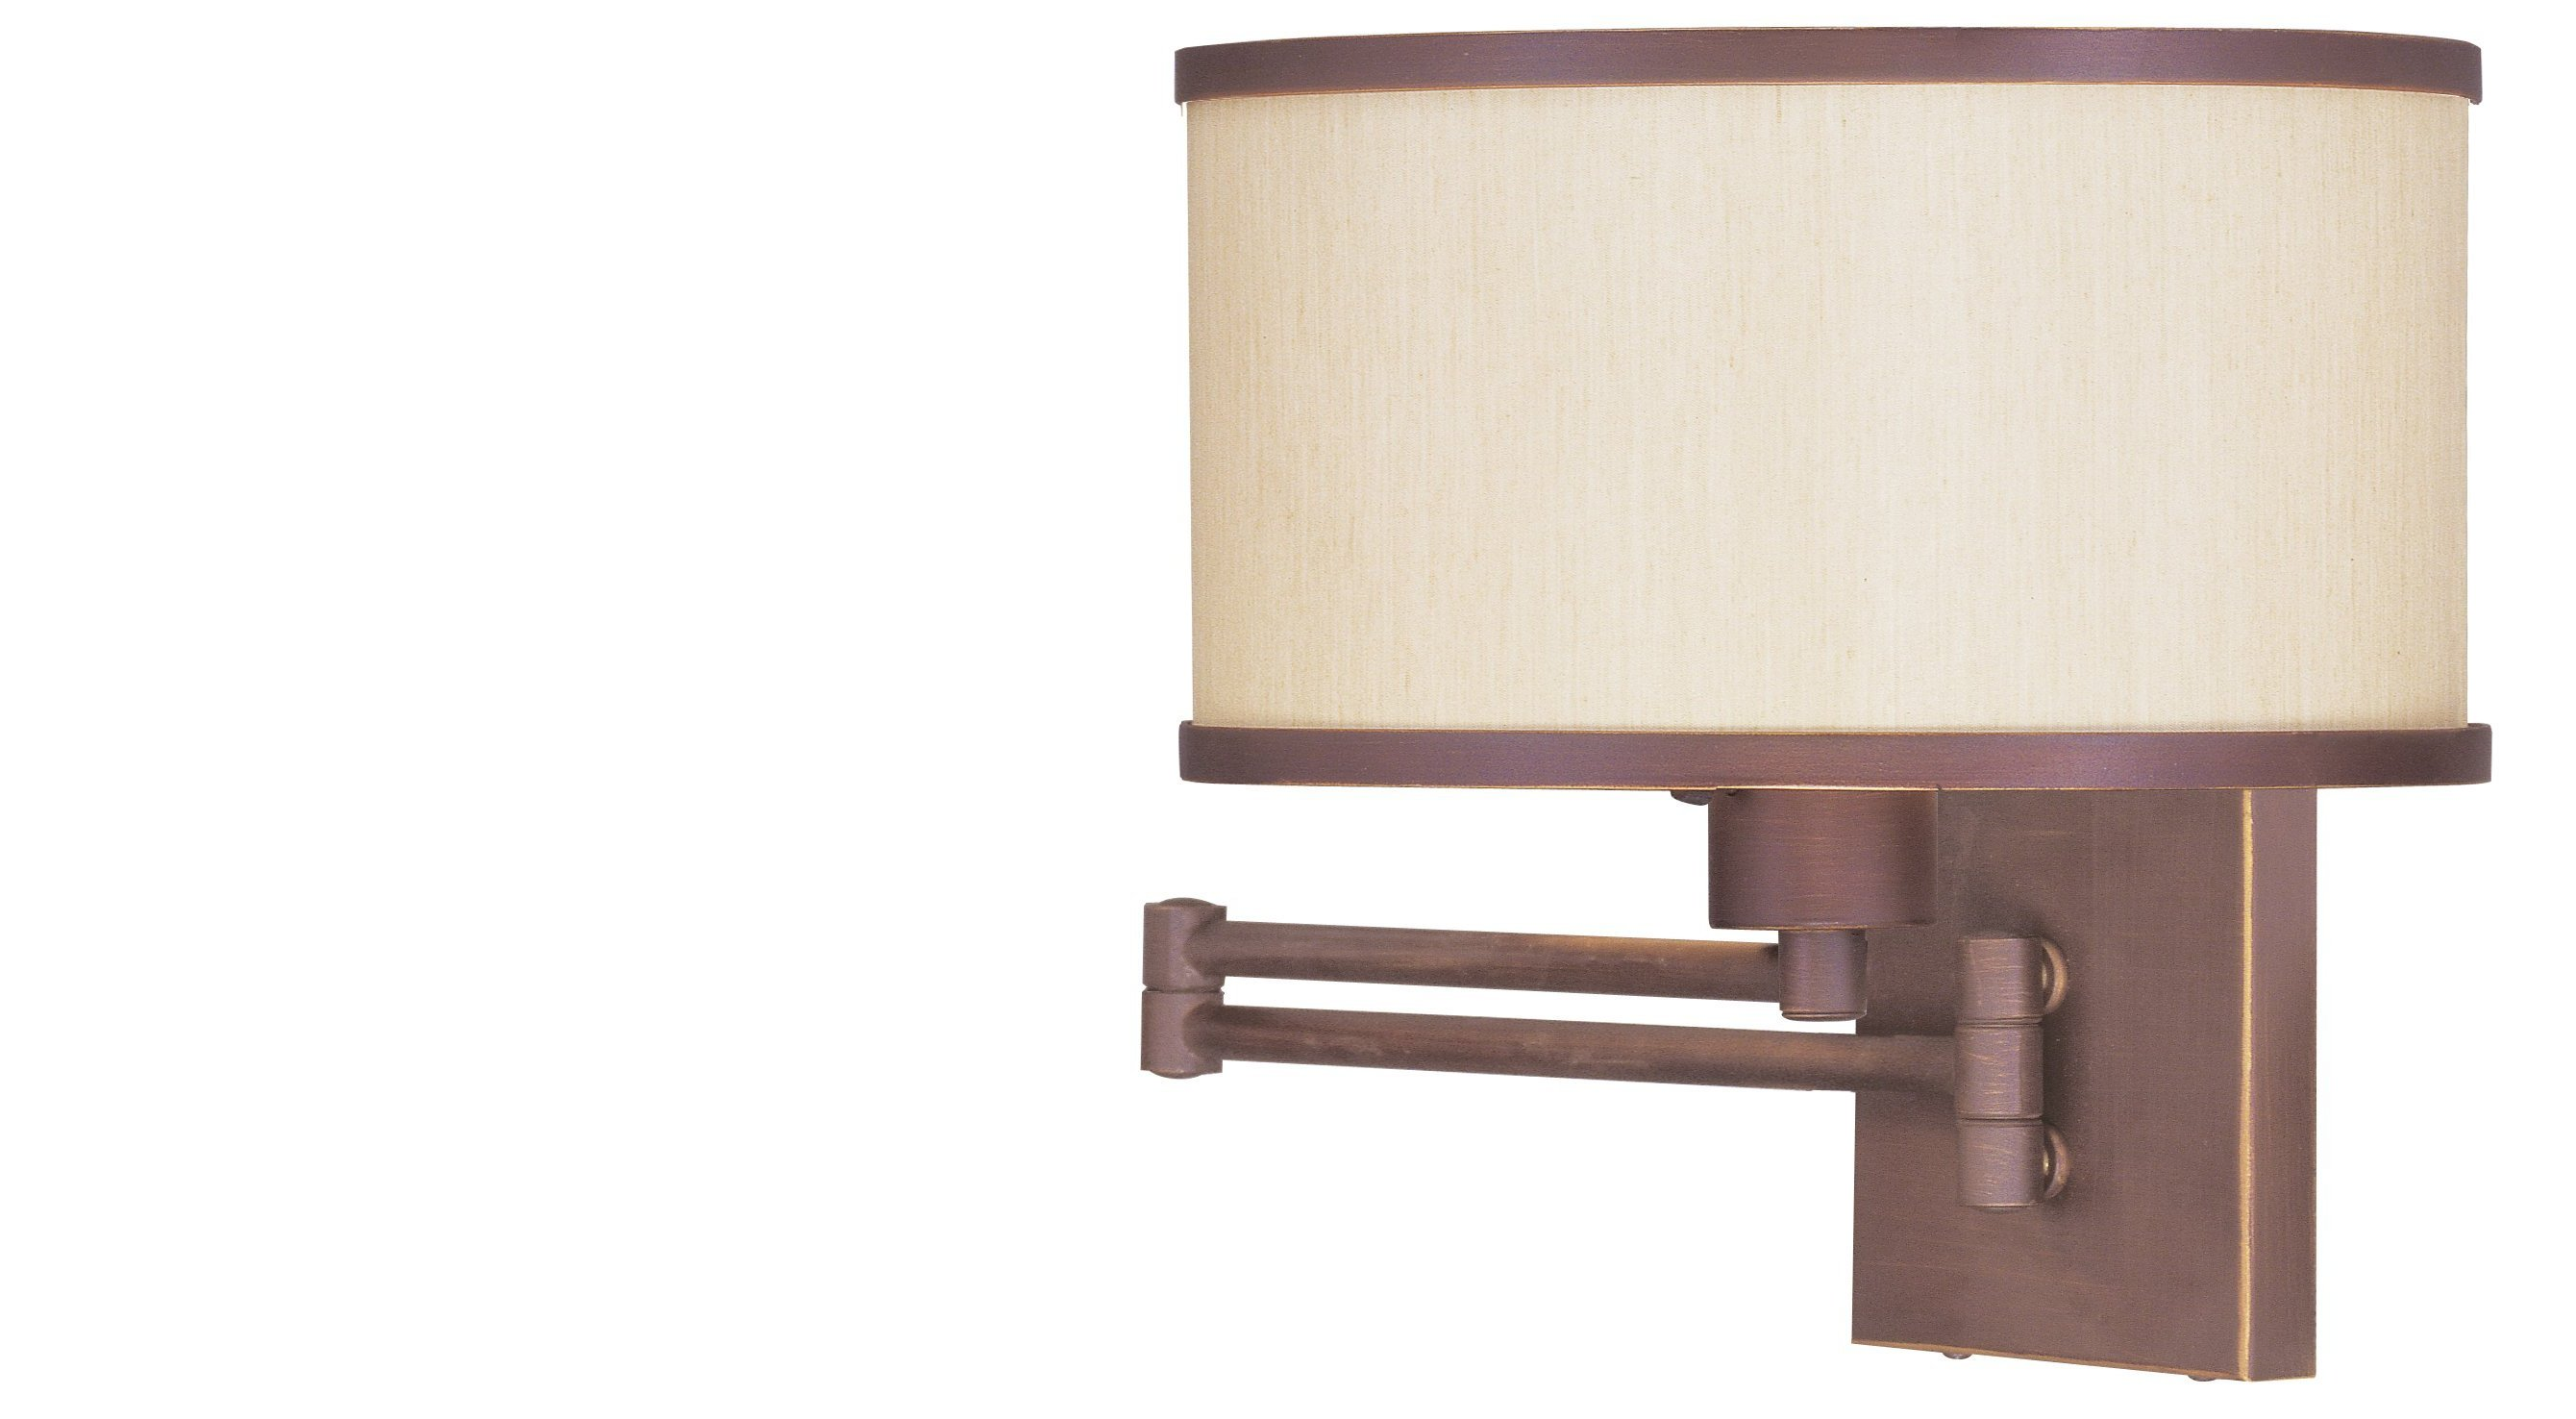 wall mounted swing arm lamps photo - 1